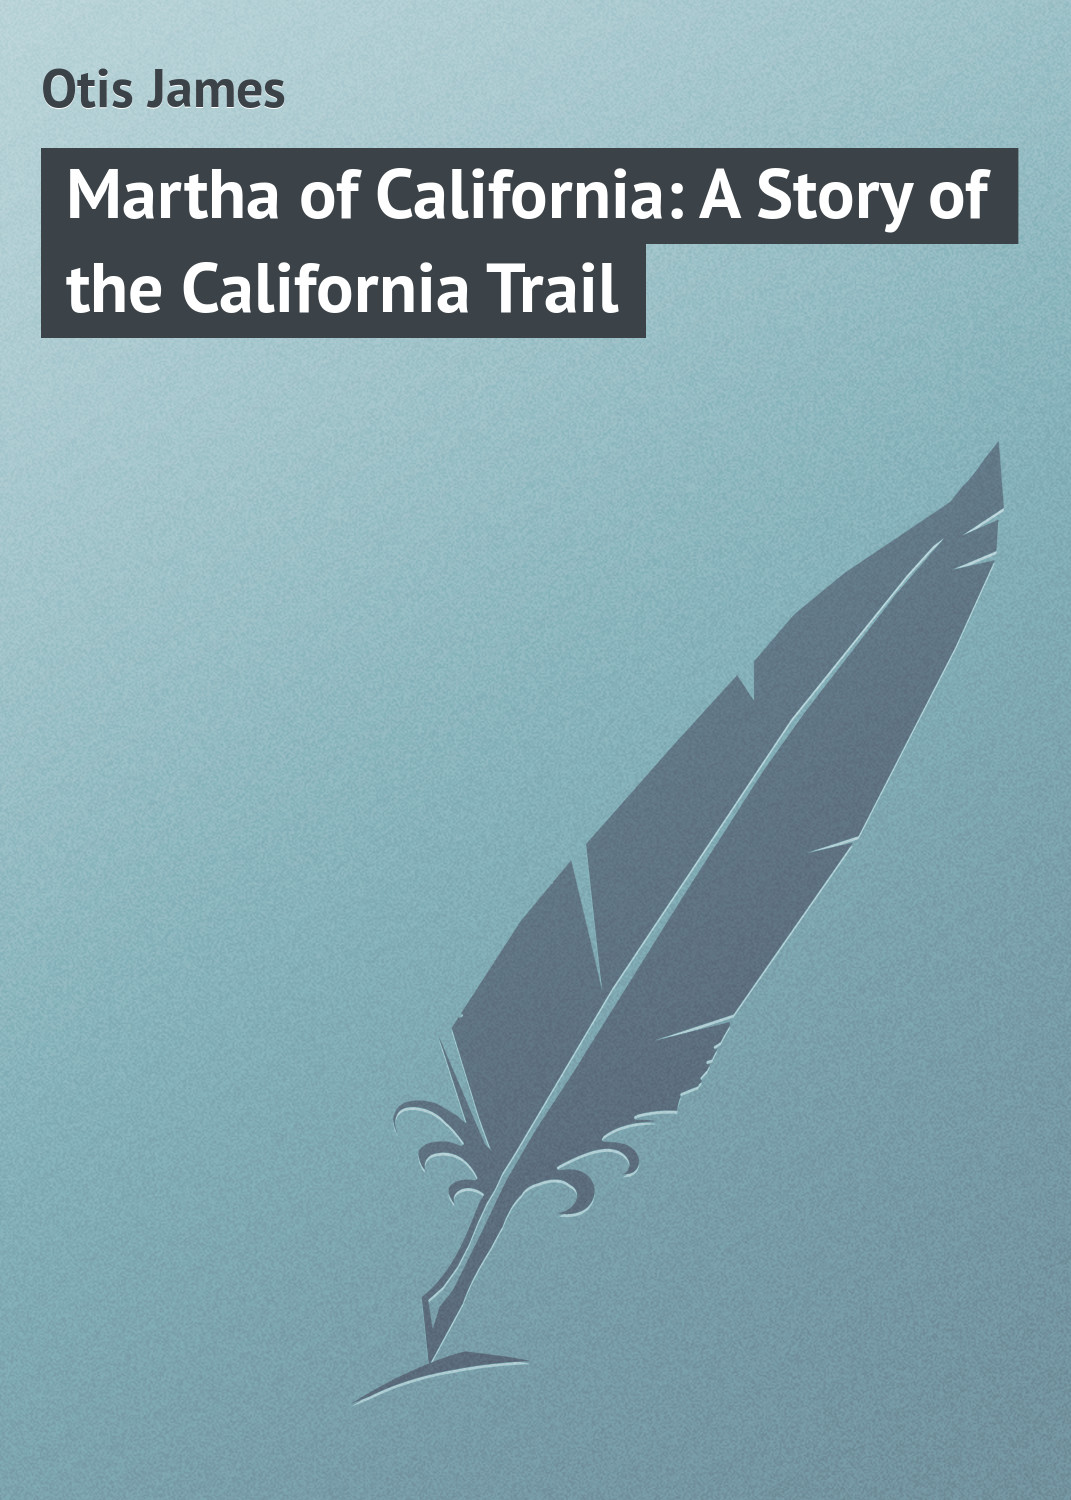 Otis James Martha of California: A Story of the California Trail